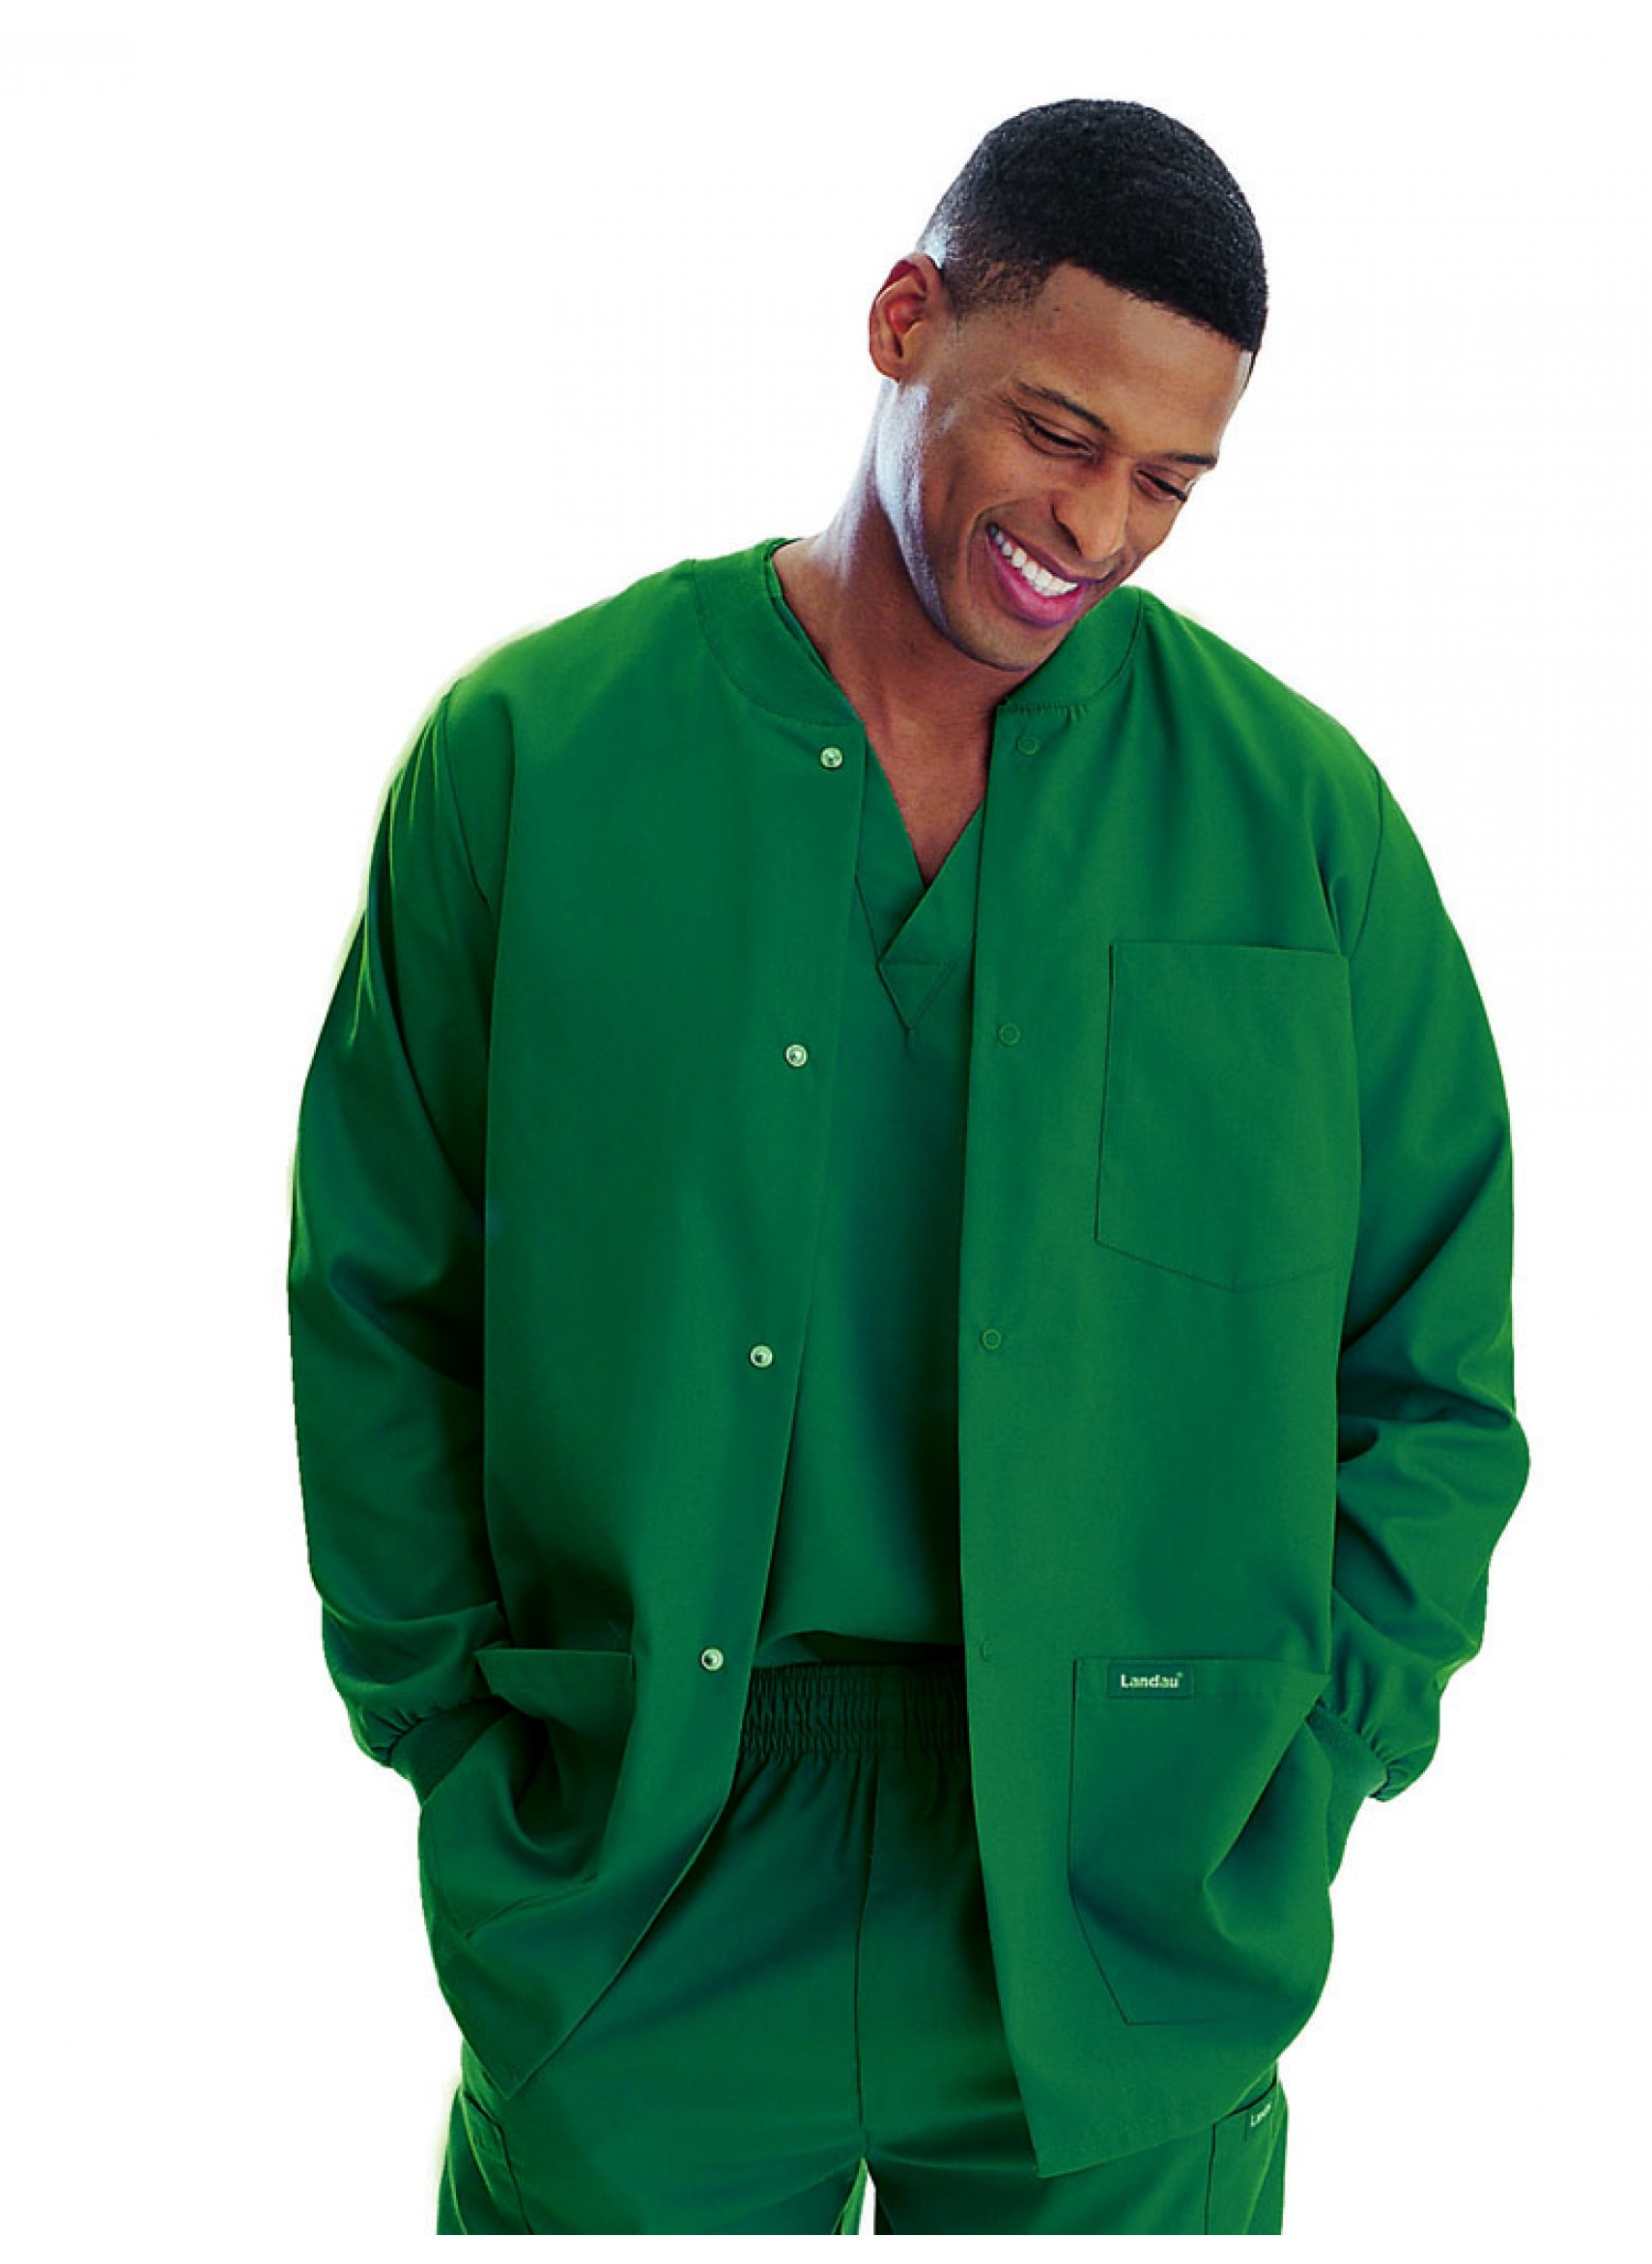 Landau Warm-Up Jacket - 7551 - Scrub Jackets | Murse World